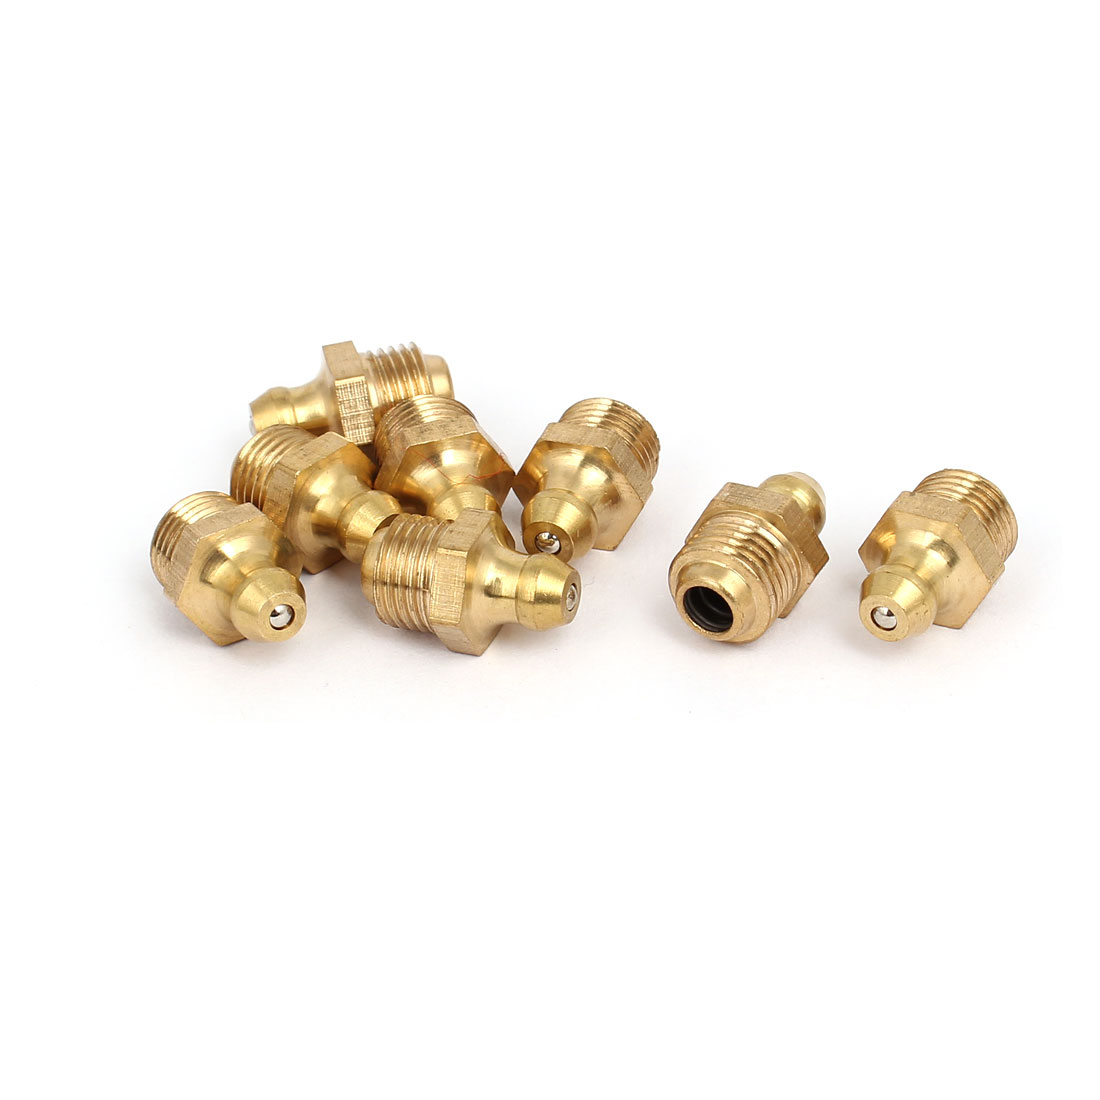 M10 Male Thread 1mm Pitch Straight Brass Grease Nipples Fittings 8 Pcs